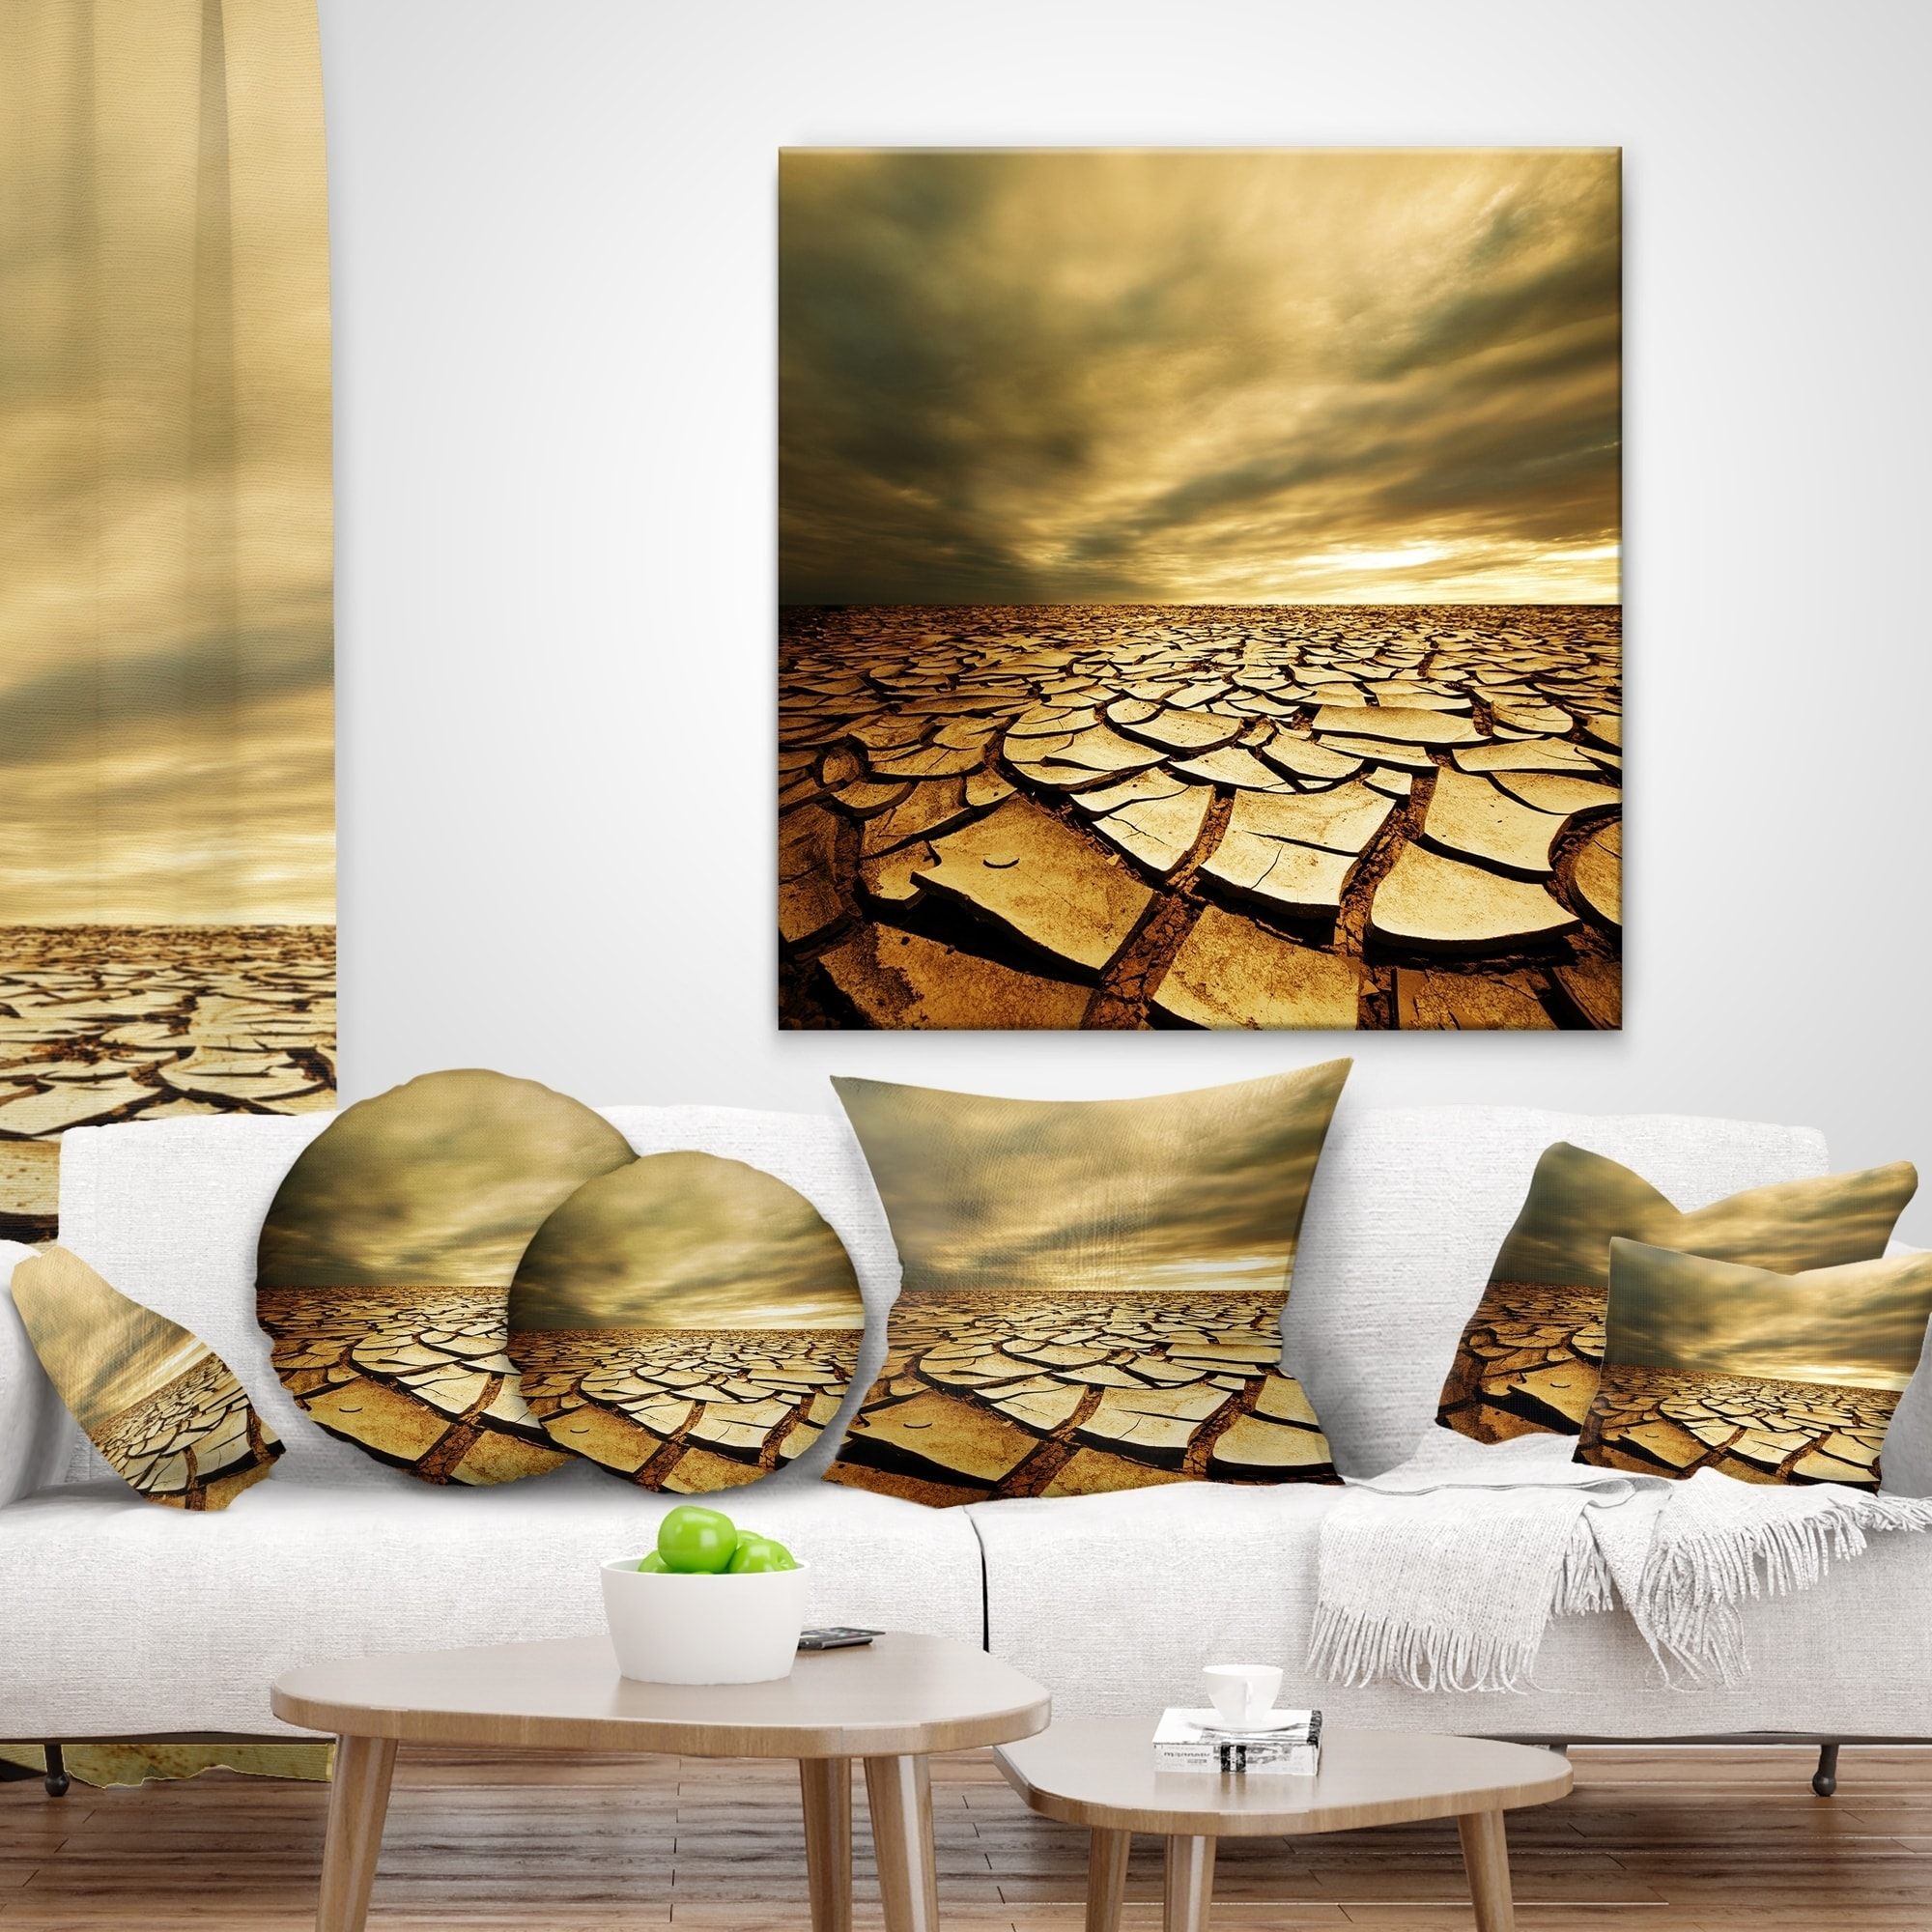 Design Art Designart Broken Drought Land With Dark Clouds African Landscape Printed Throw Pillow Walmart Com Walmart Com